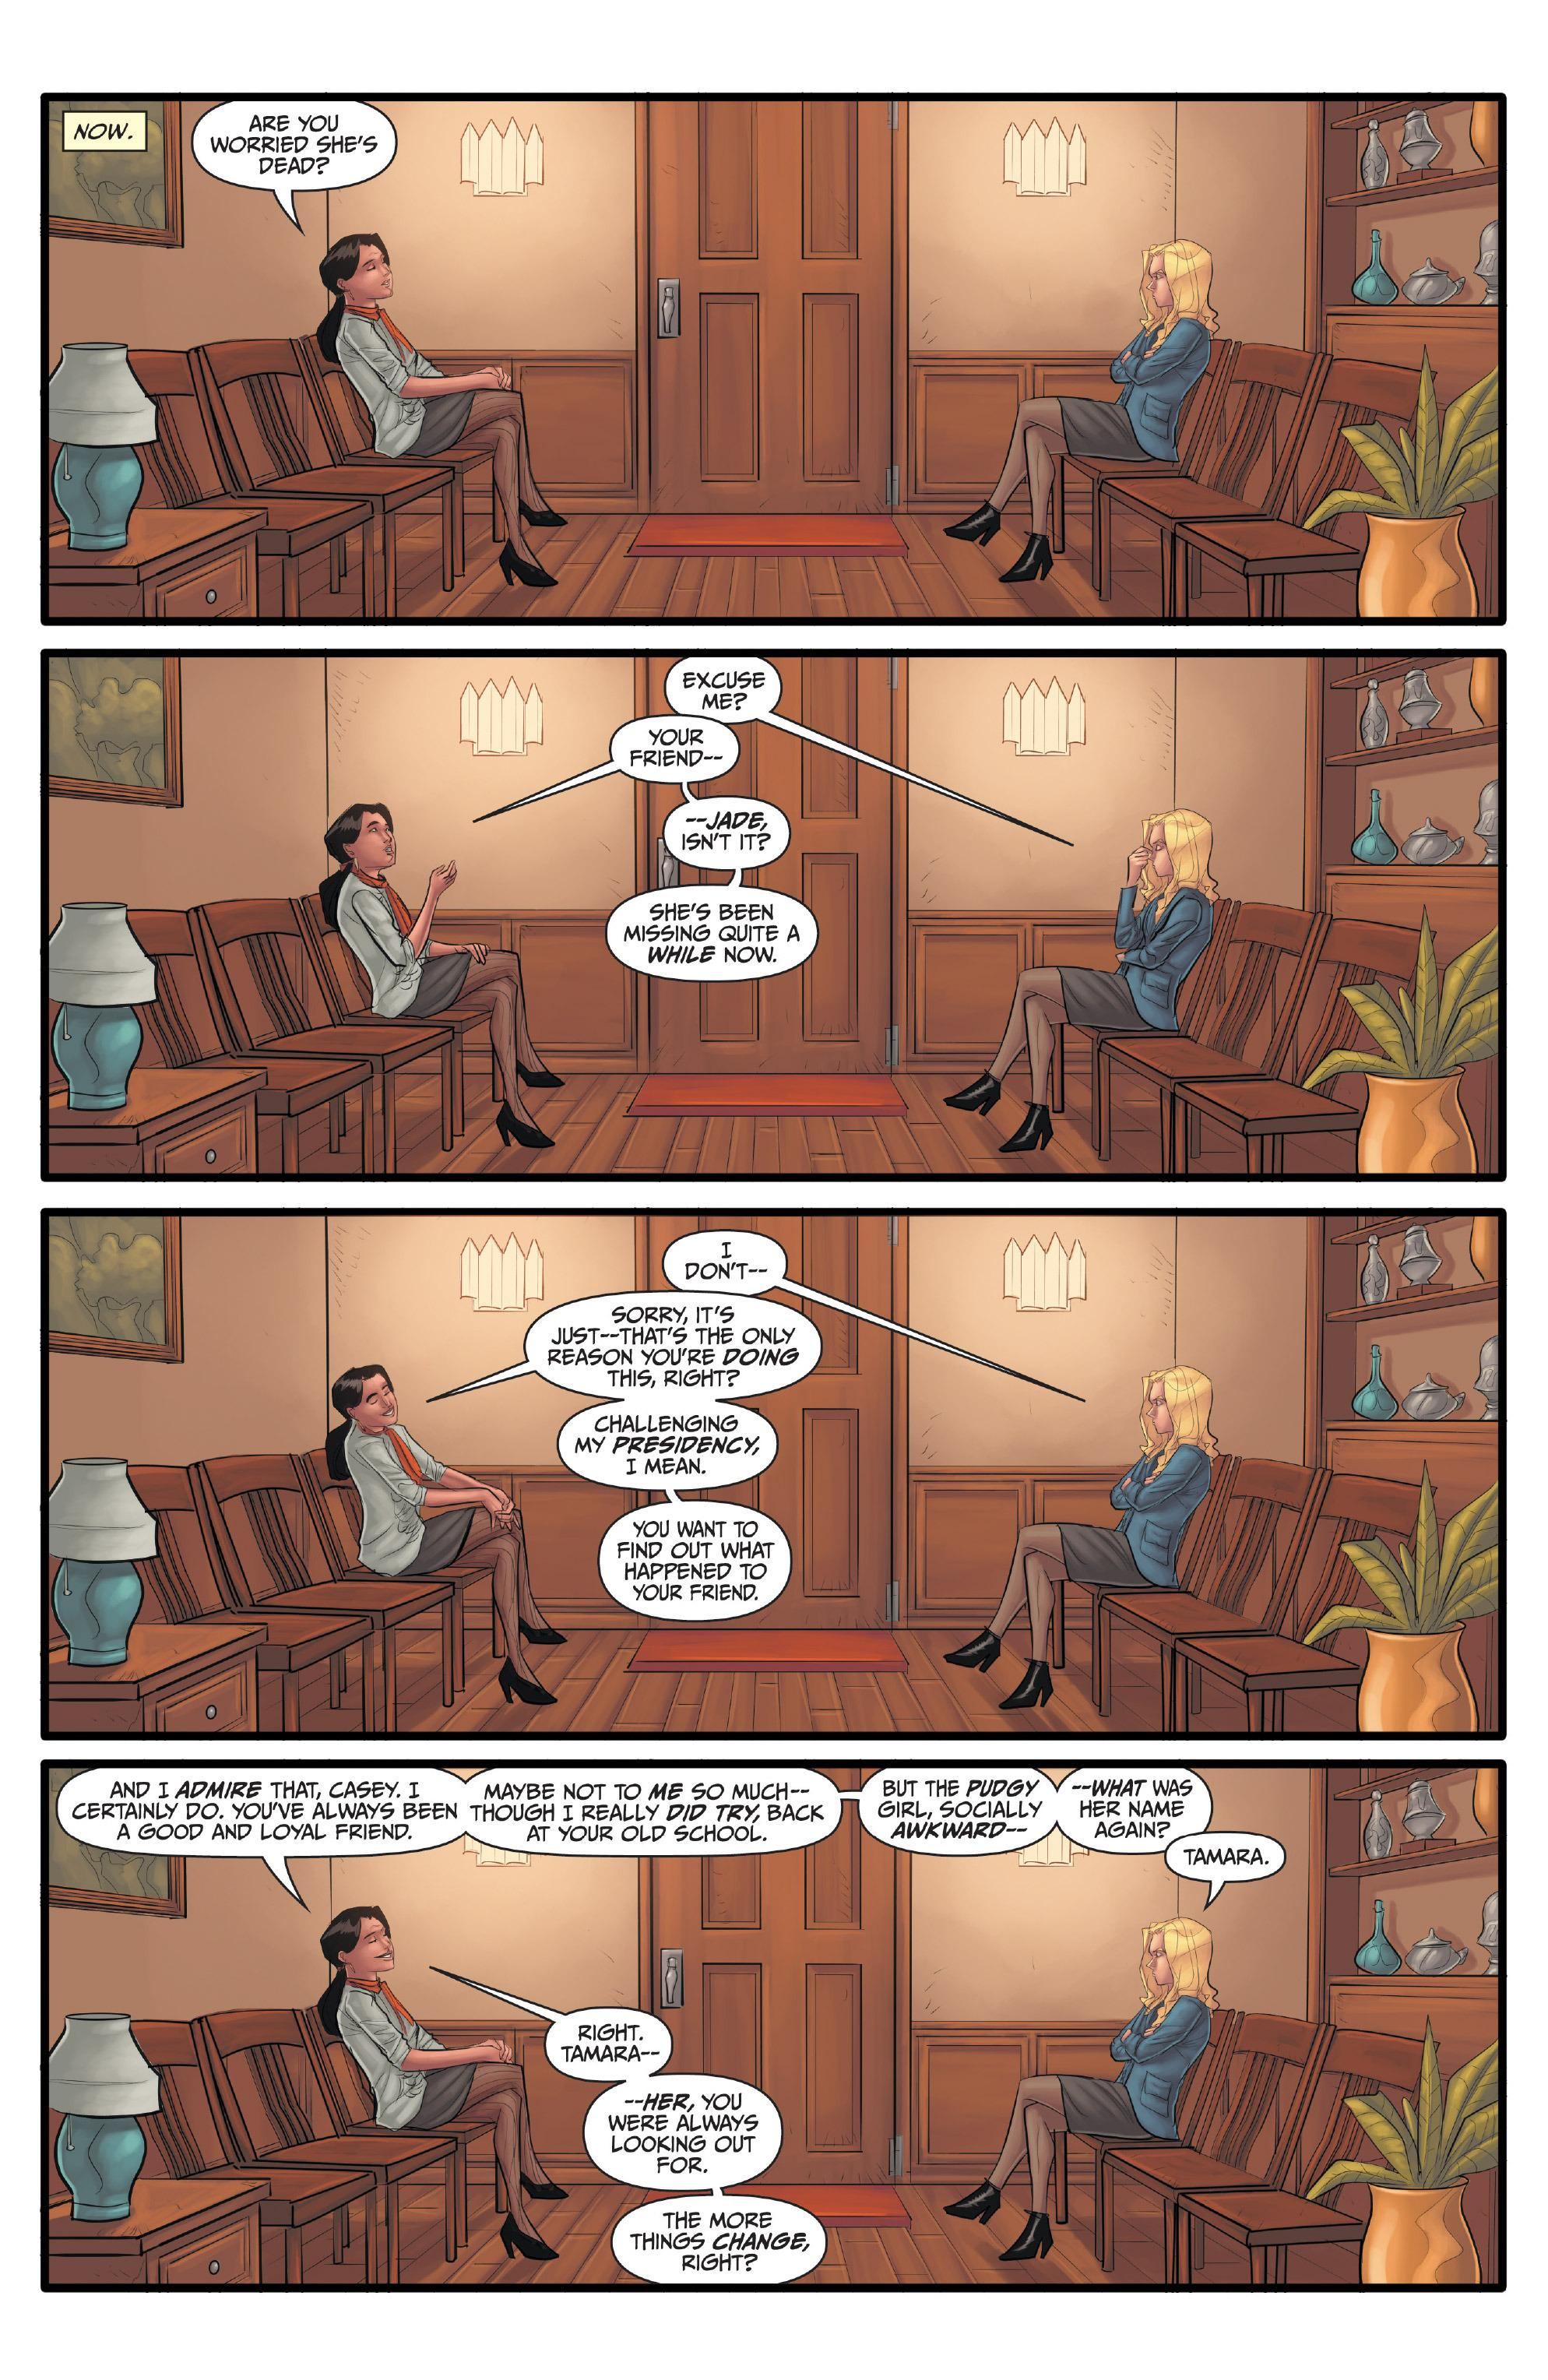 Morning Glories Expulsion review